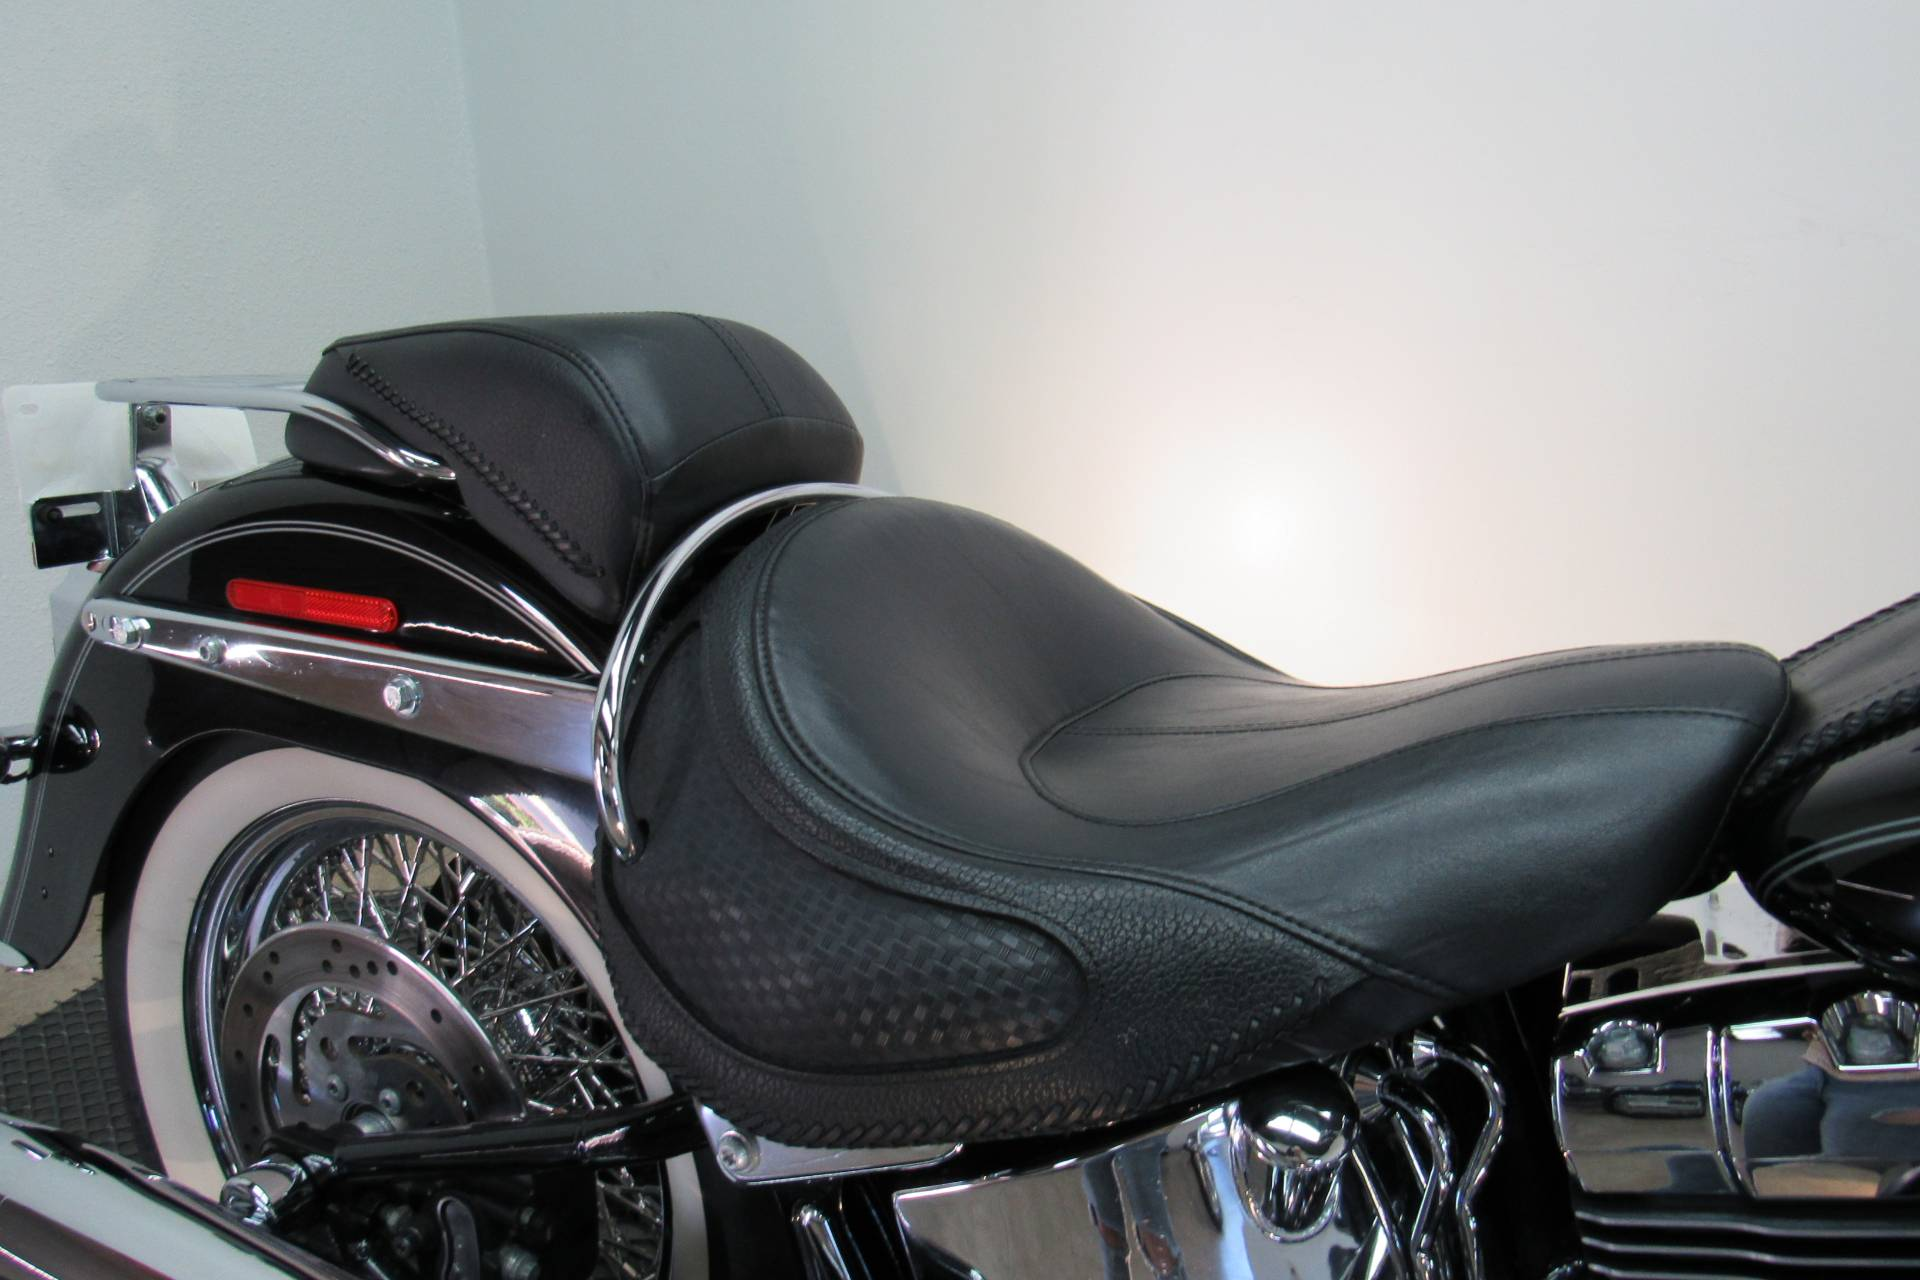 2009 Harley-Davidson Softail Deluxe in Temecula, California - Photo 8